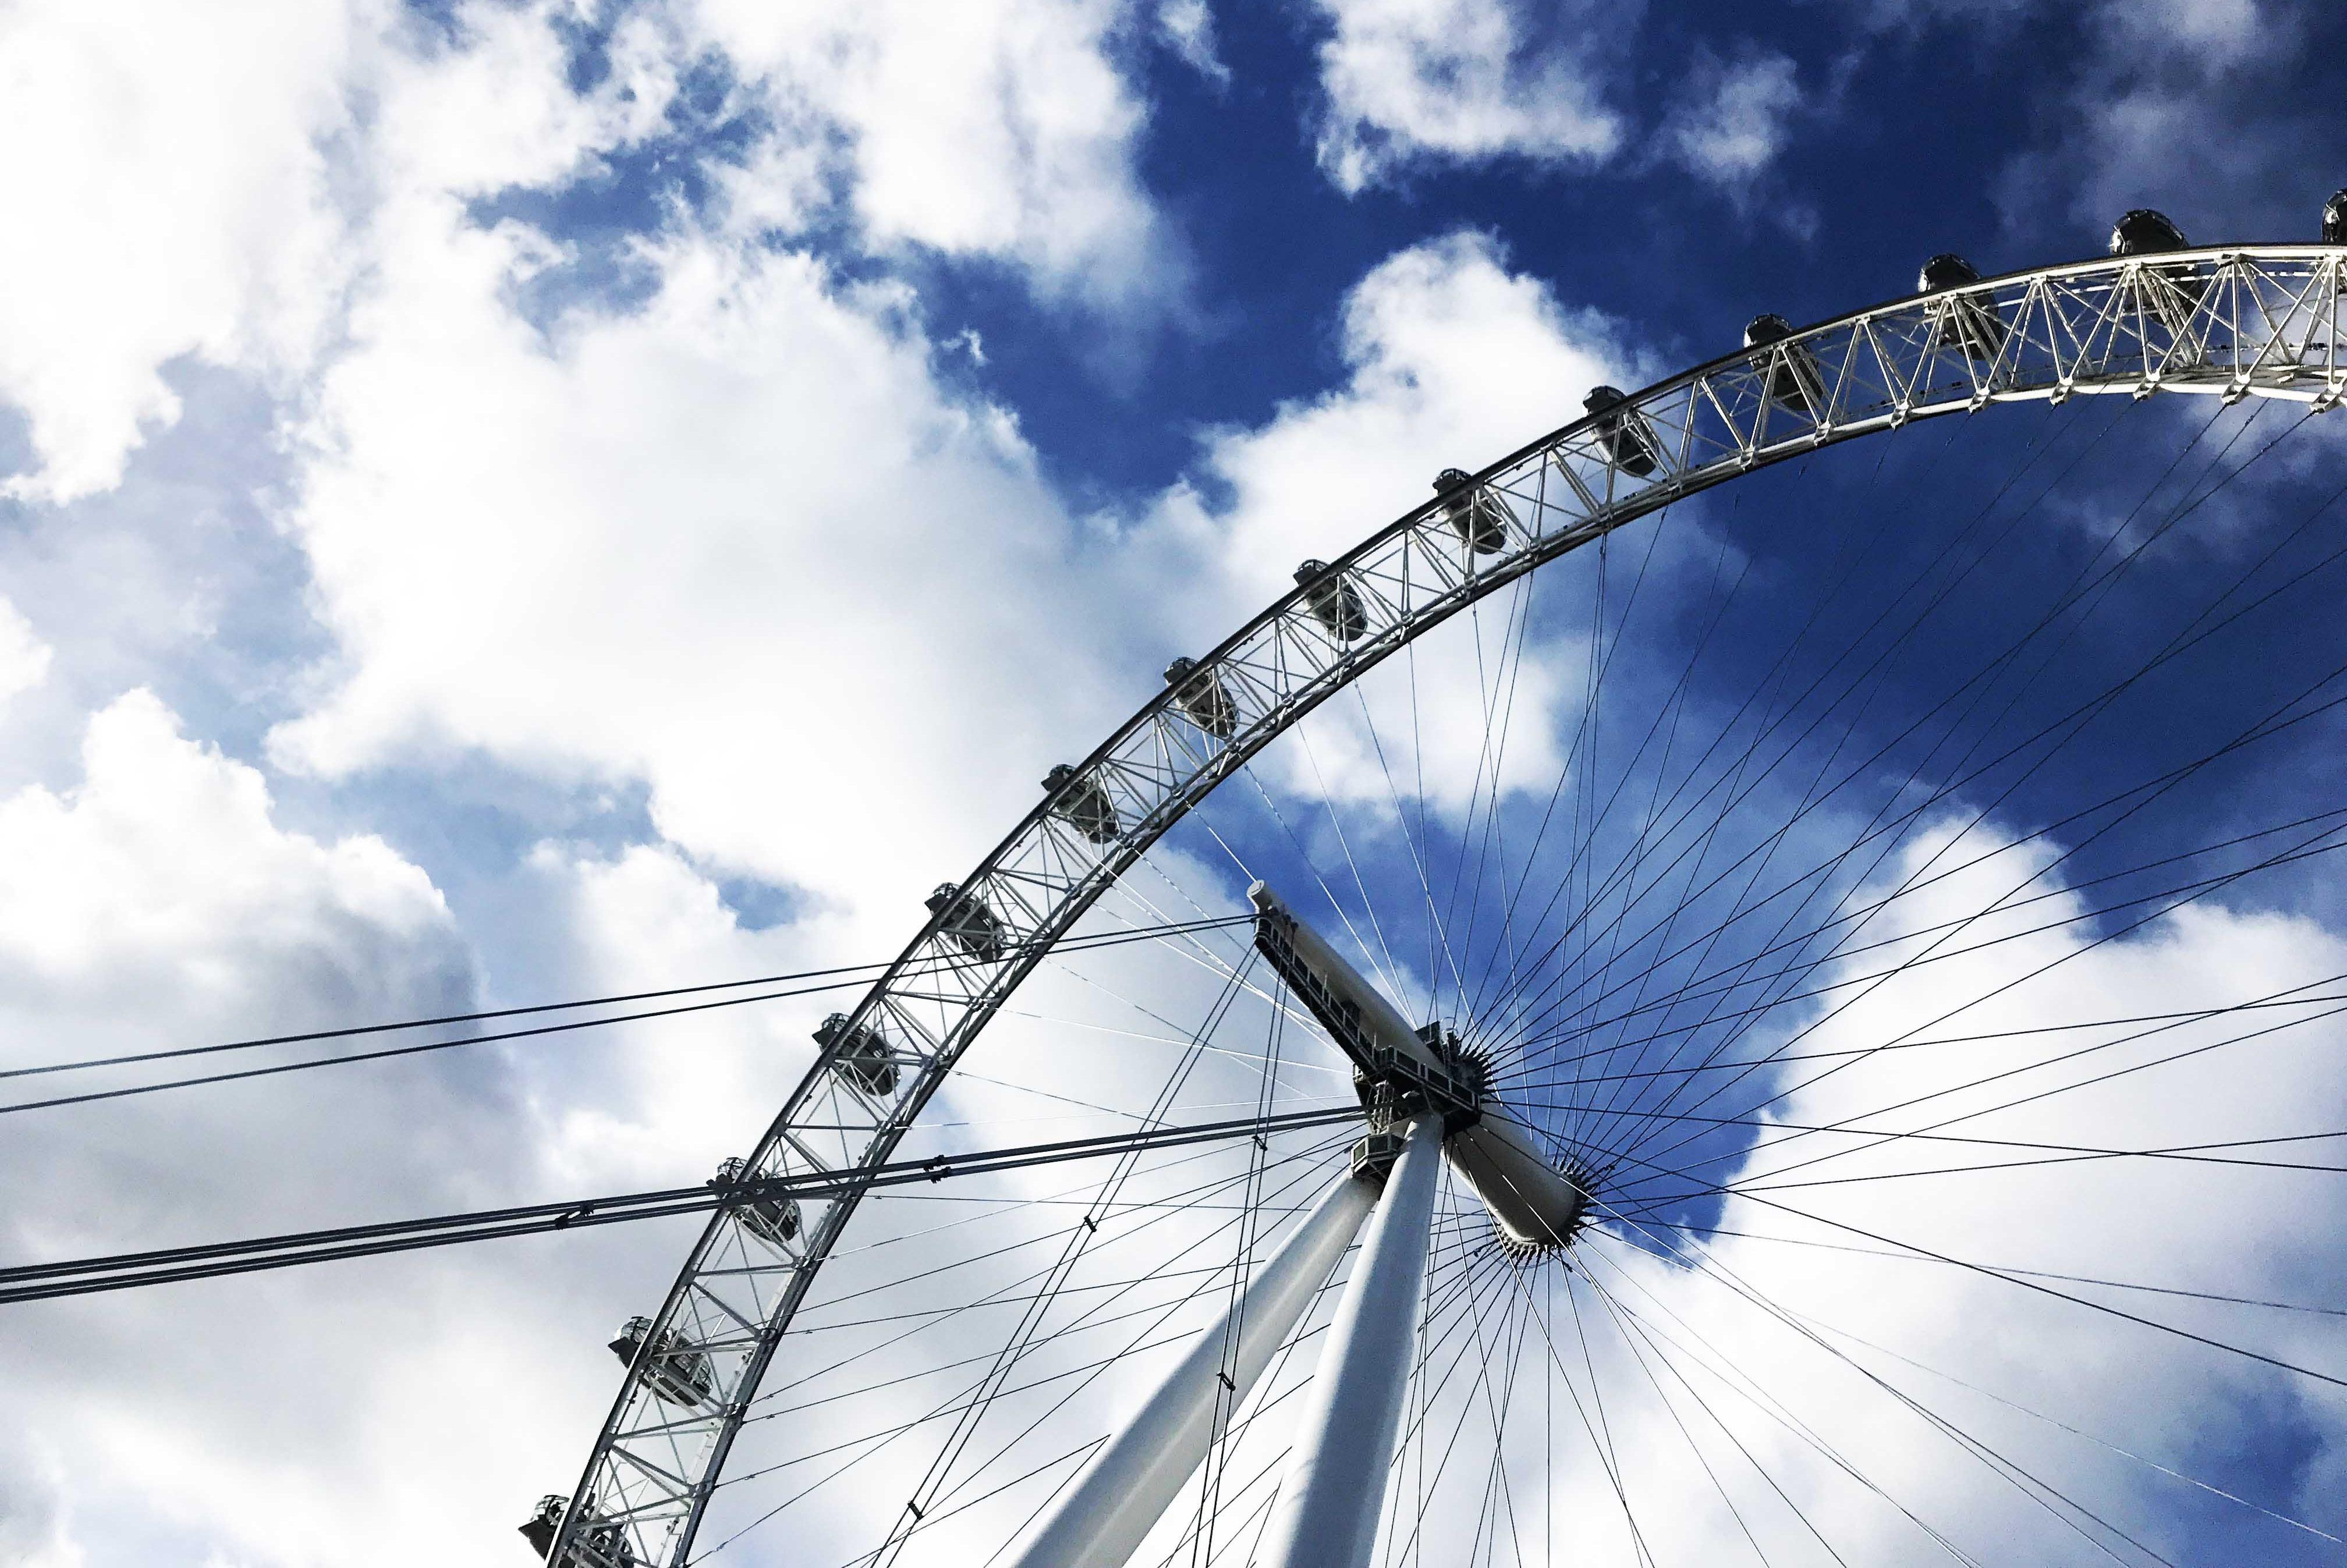 View of the London Eye with the sky behind it.